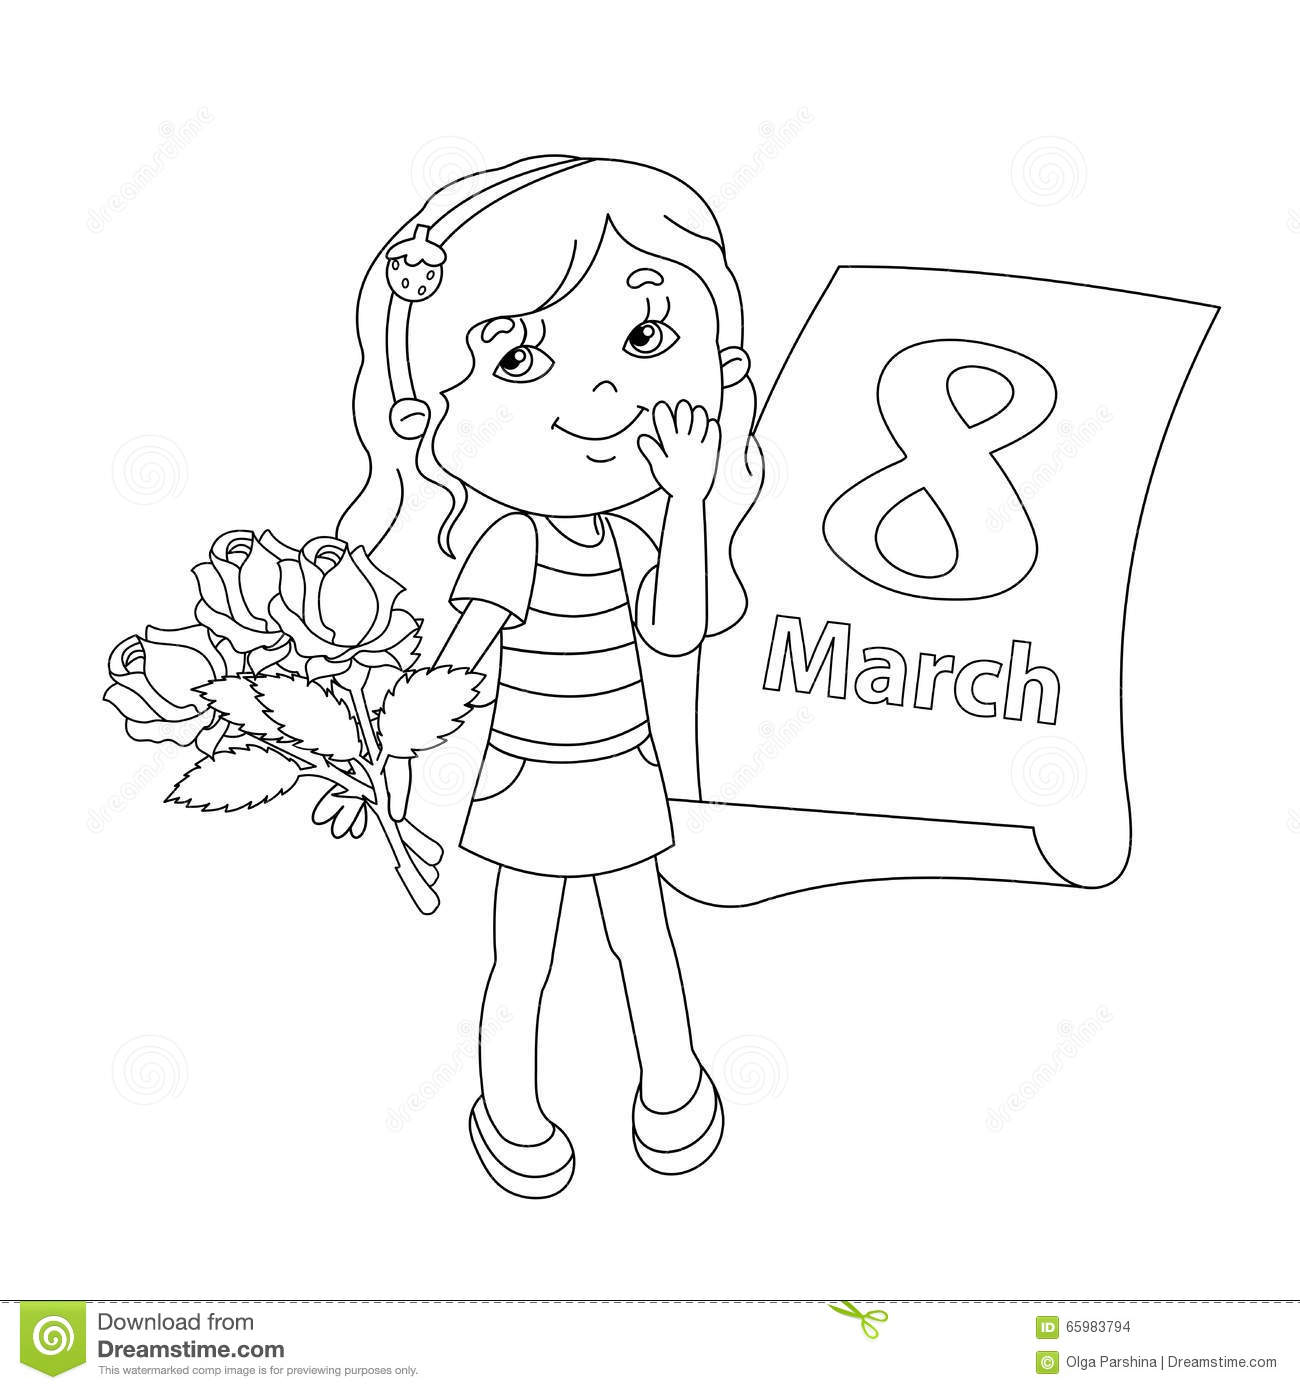 Coloring Page Outline Of Girl With Flowers March 8 Stock Vector